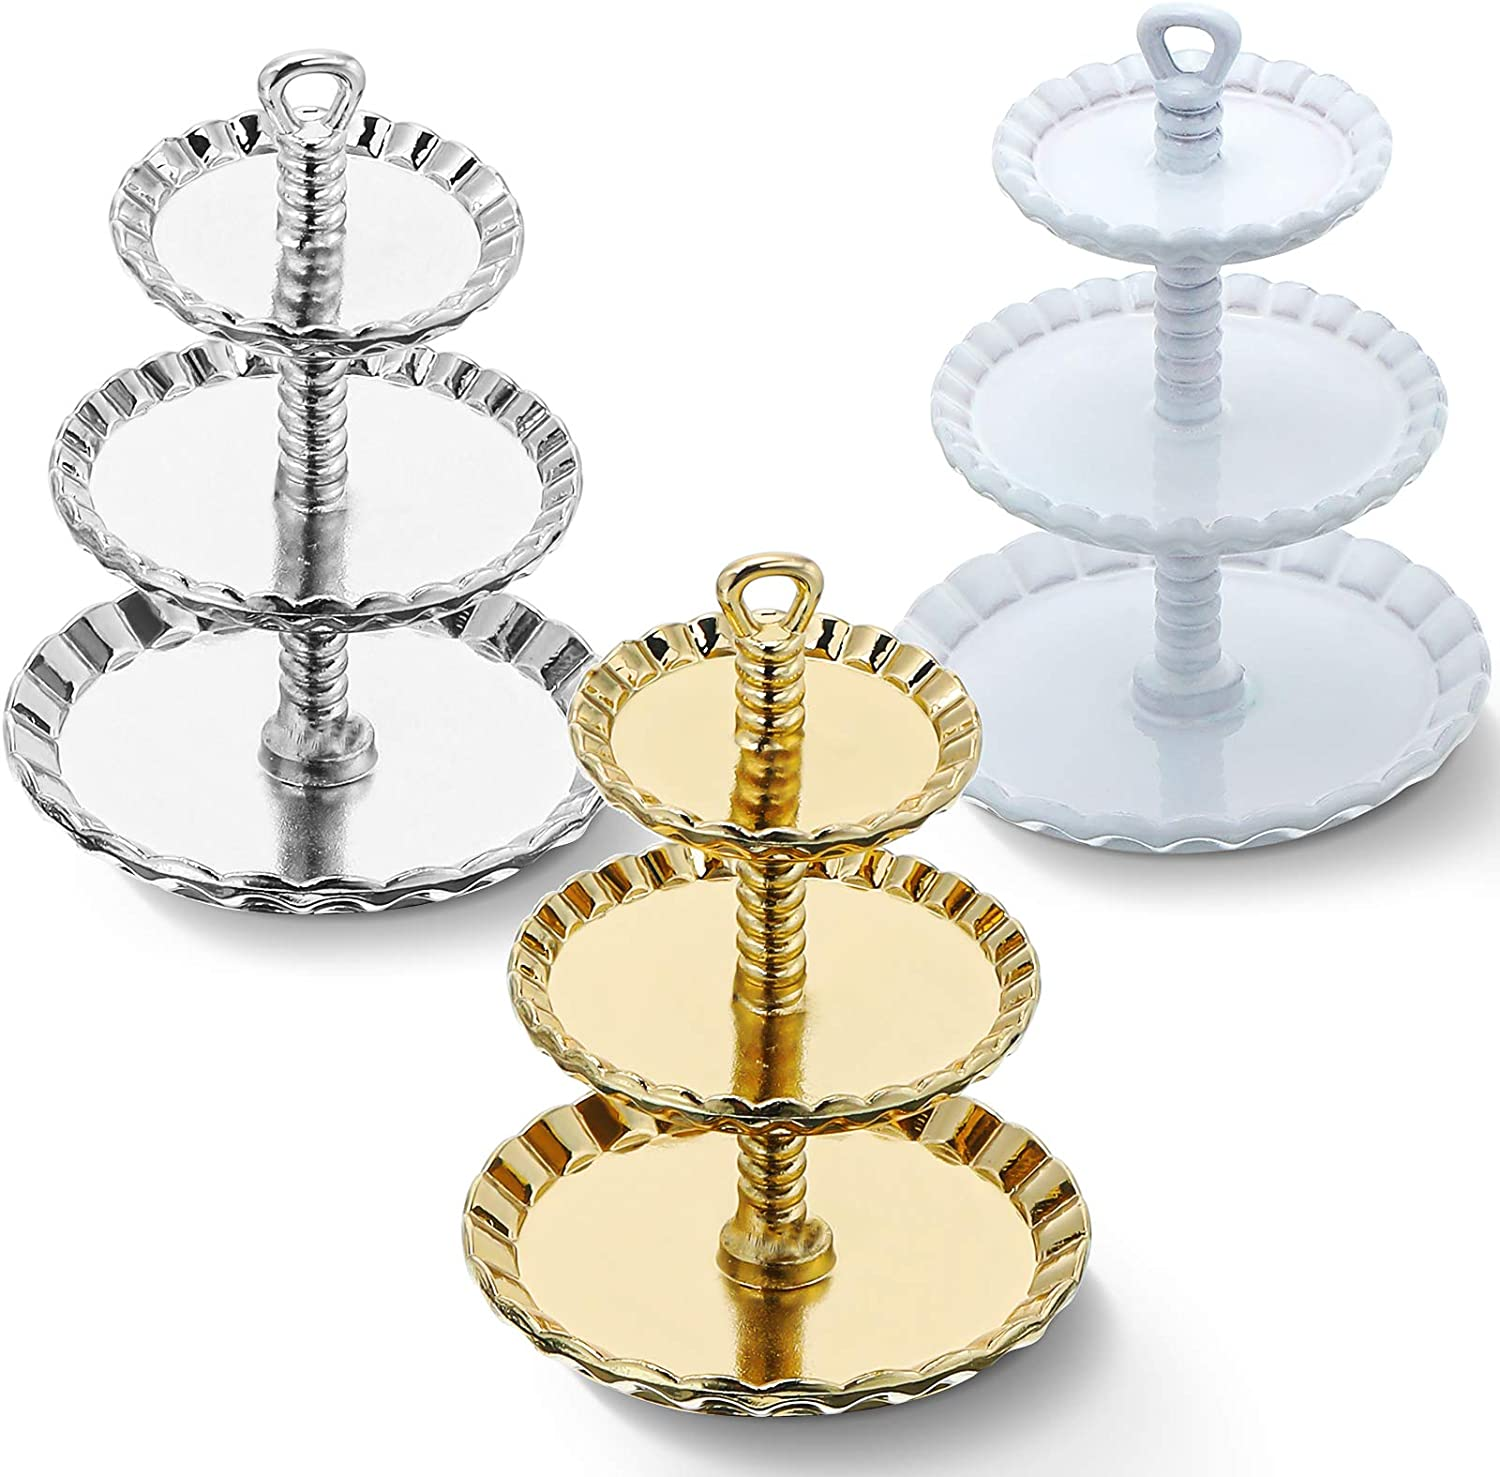 3 Pieces Dollhouse Cupcake Stand Timeless Miniature 3-Tier Dessert Tower Alloy Mini Cake Stand Tea Time Pastry Tower Dollhouse Food Display Holder Dollhouse Kitchen Accessories for Dollhouse Decors